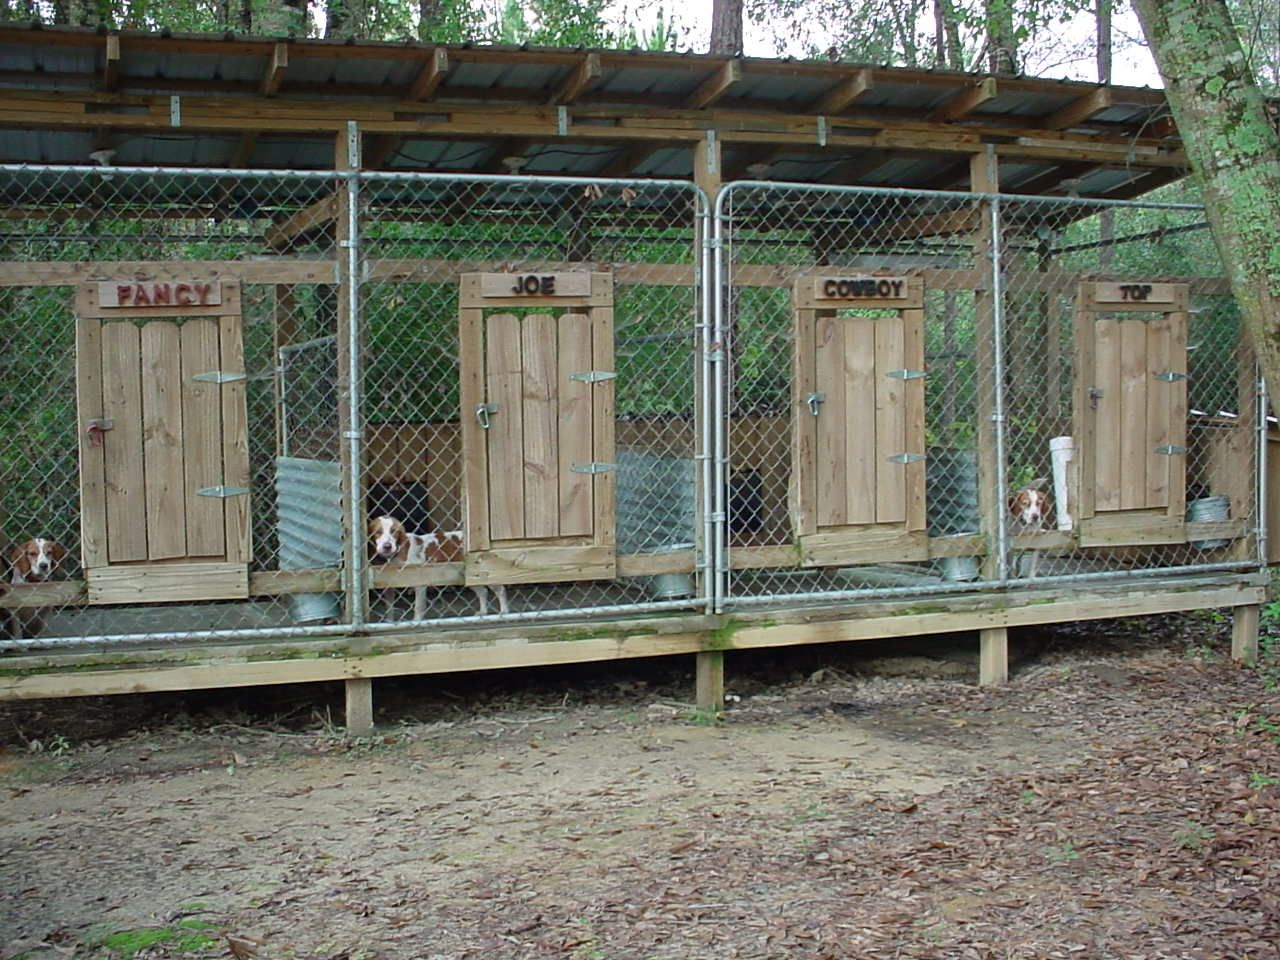 Hound House Dog Boarding Kennels